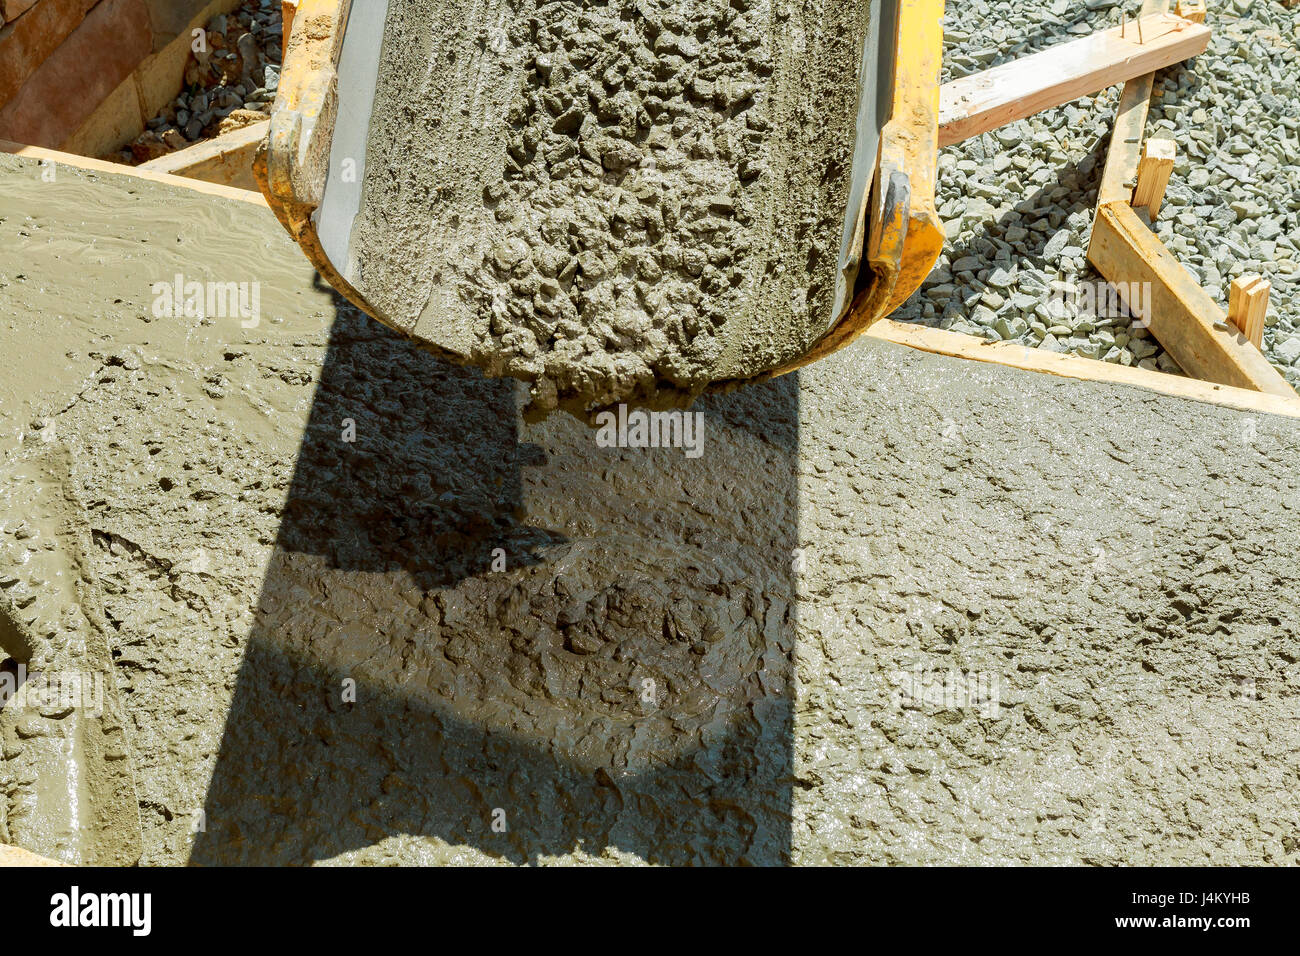 Pouring cement during Upgrade to residential street Concrete pouring during concreting Stock Photo